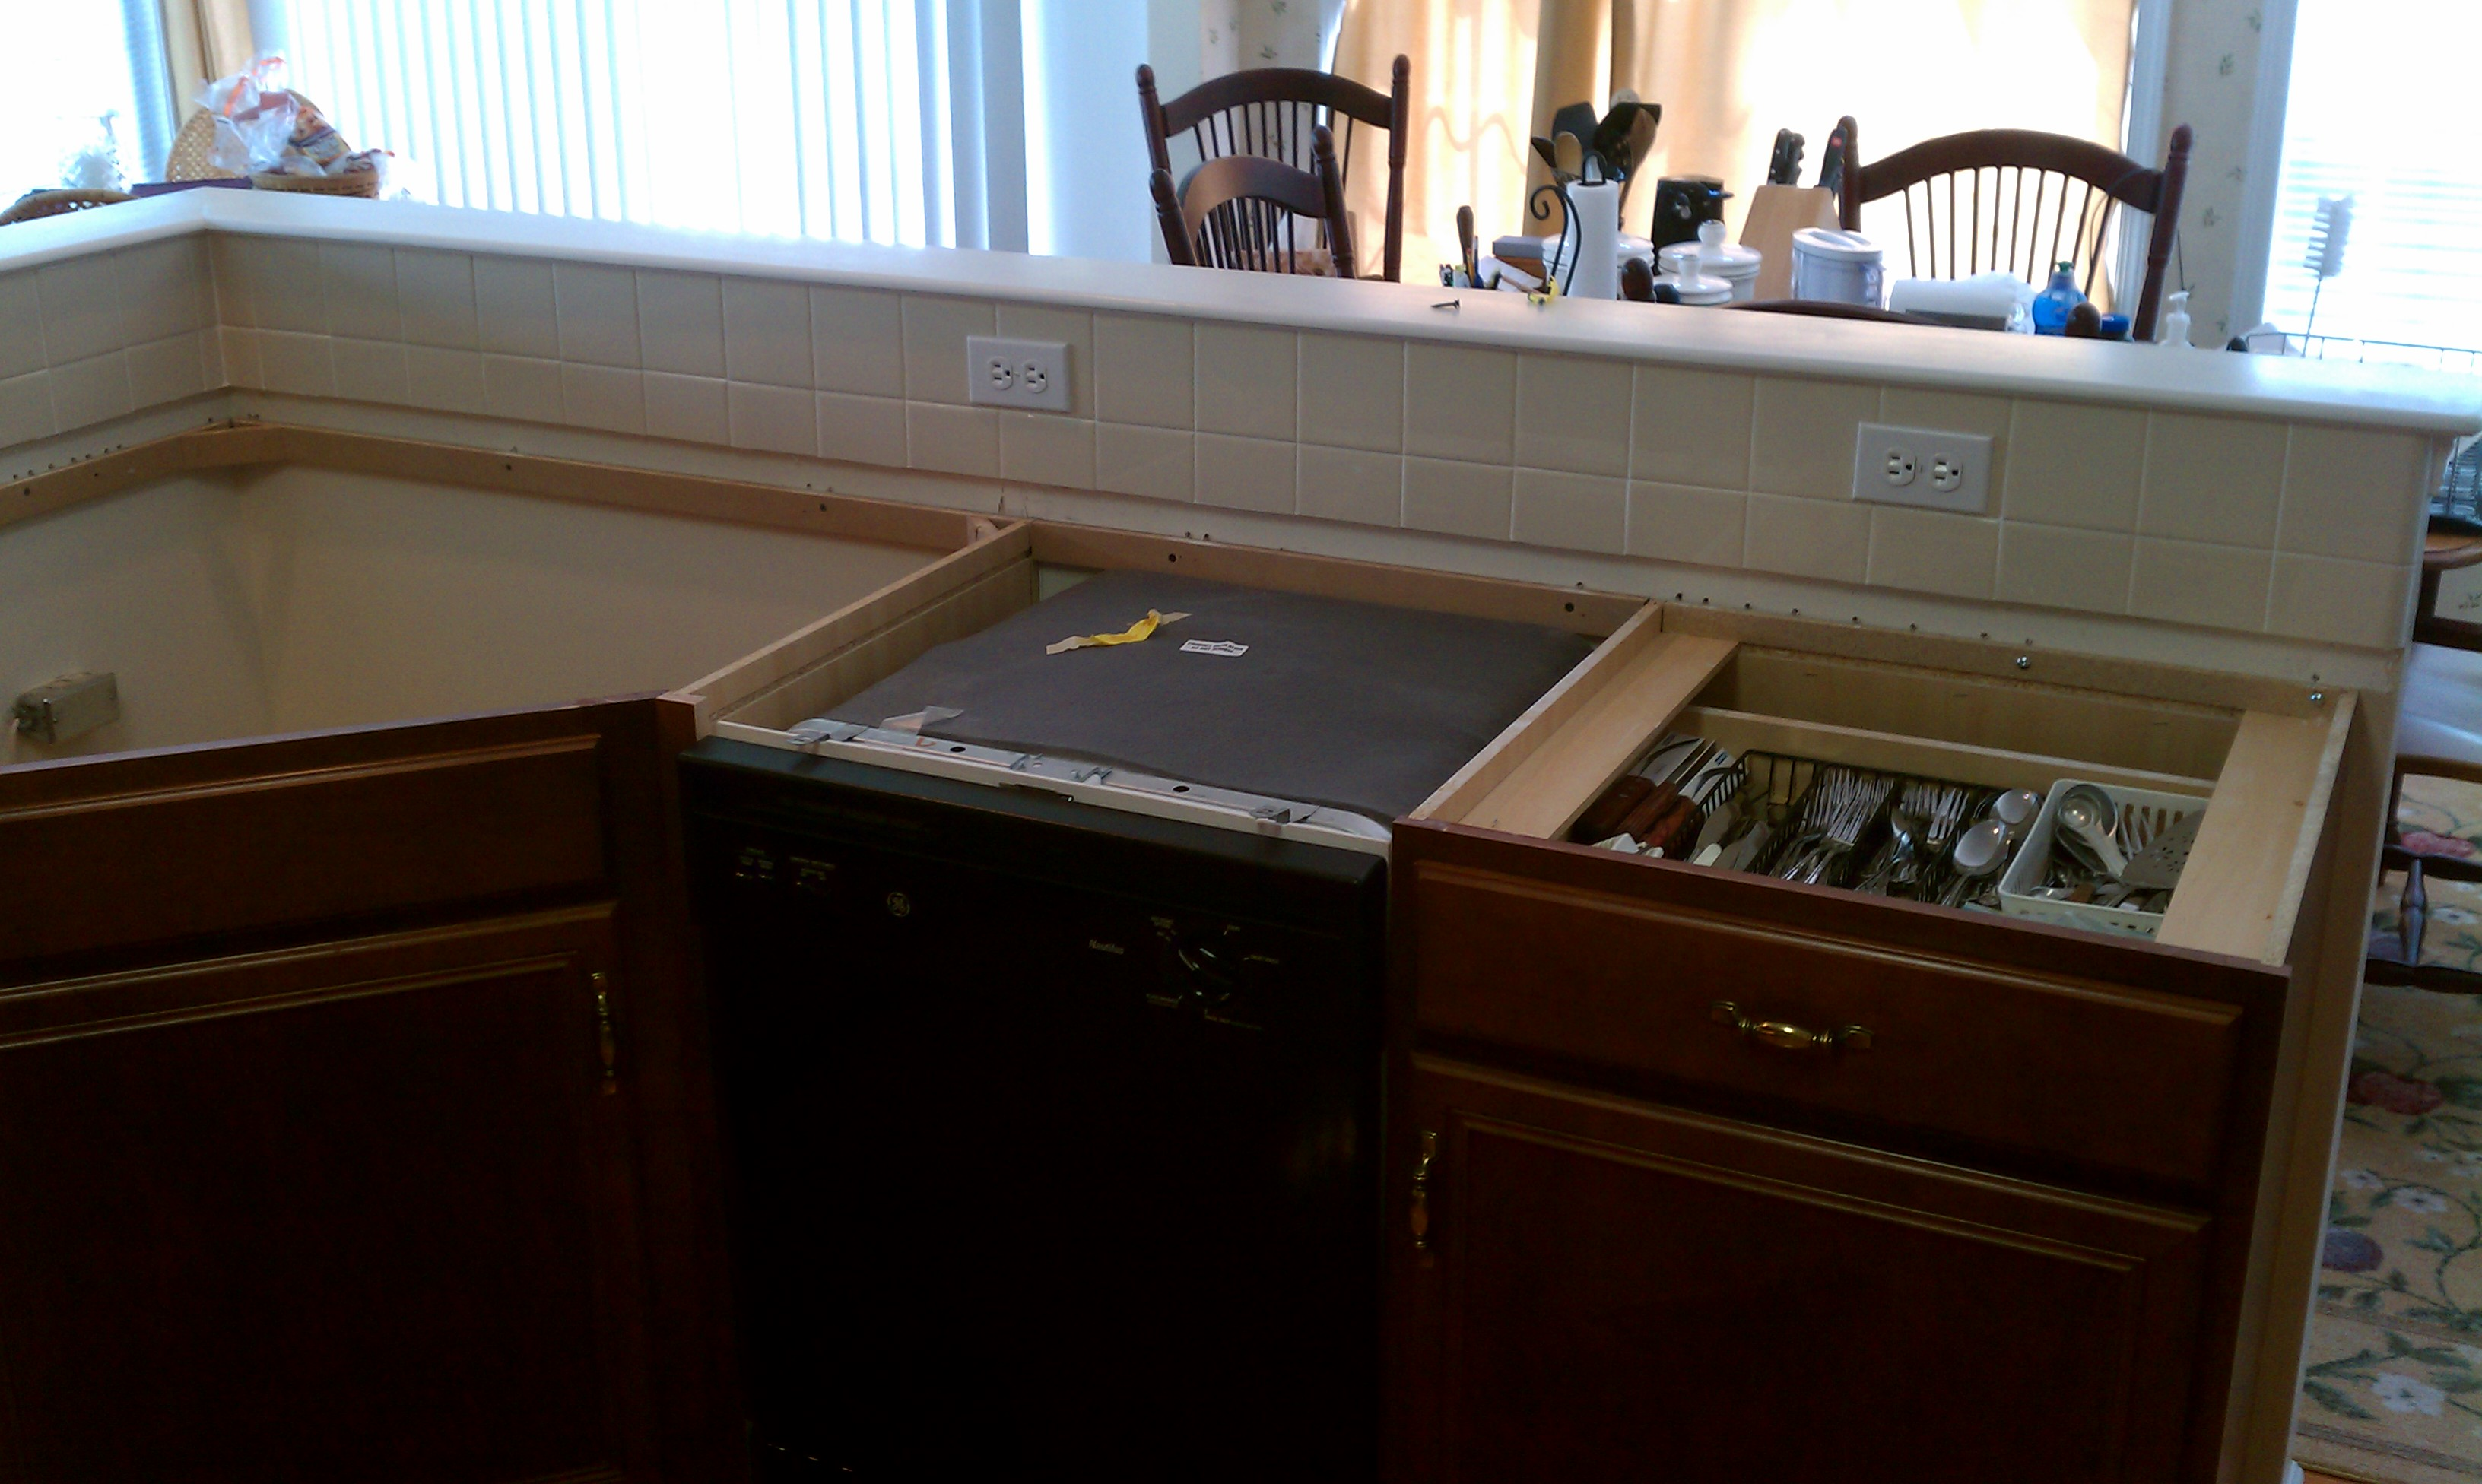 Dishwasher Granite Countertop : Granite Countertops & Under Cabinet Lighting West Chester, PA ...